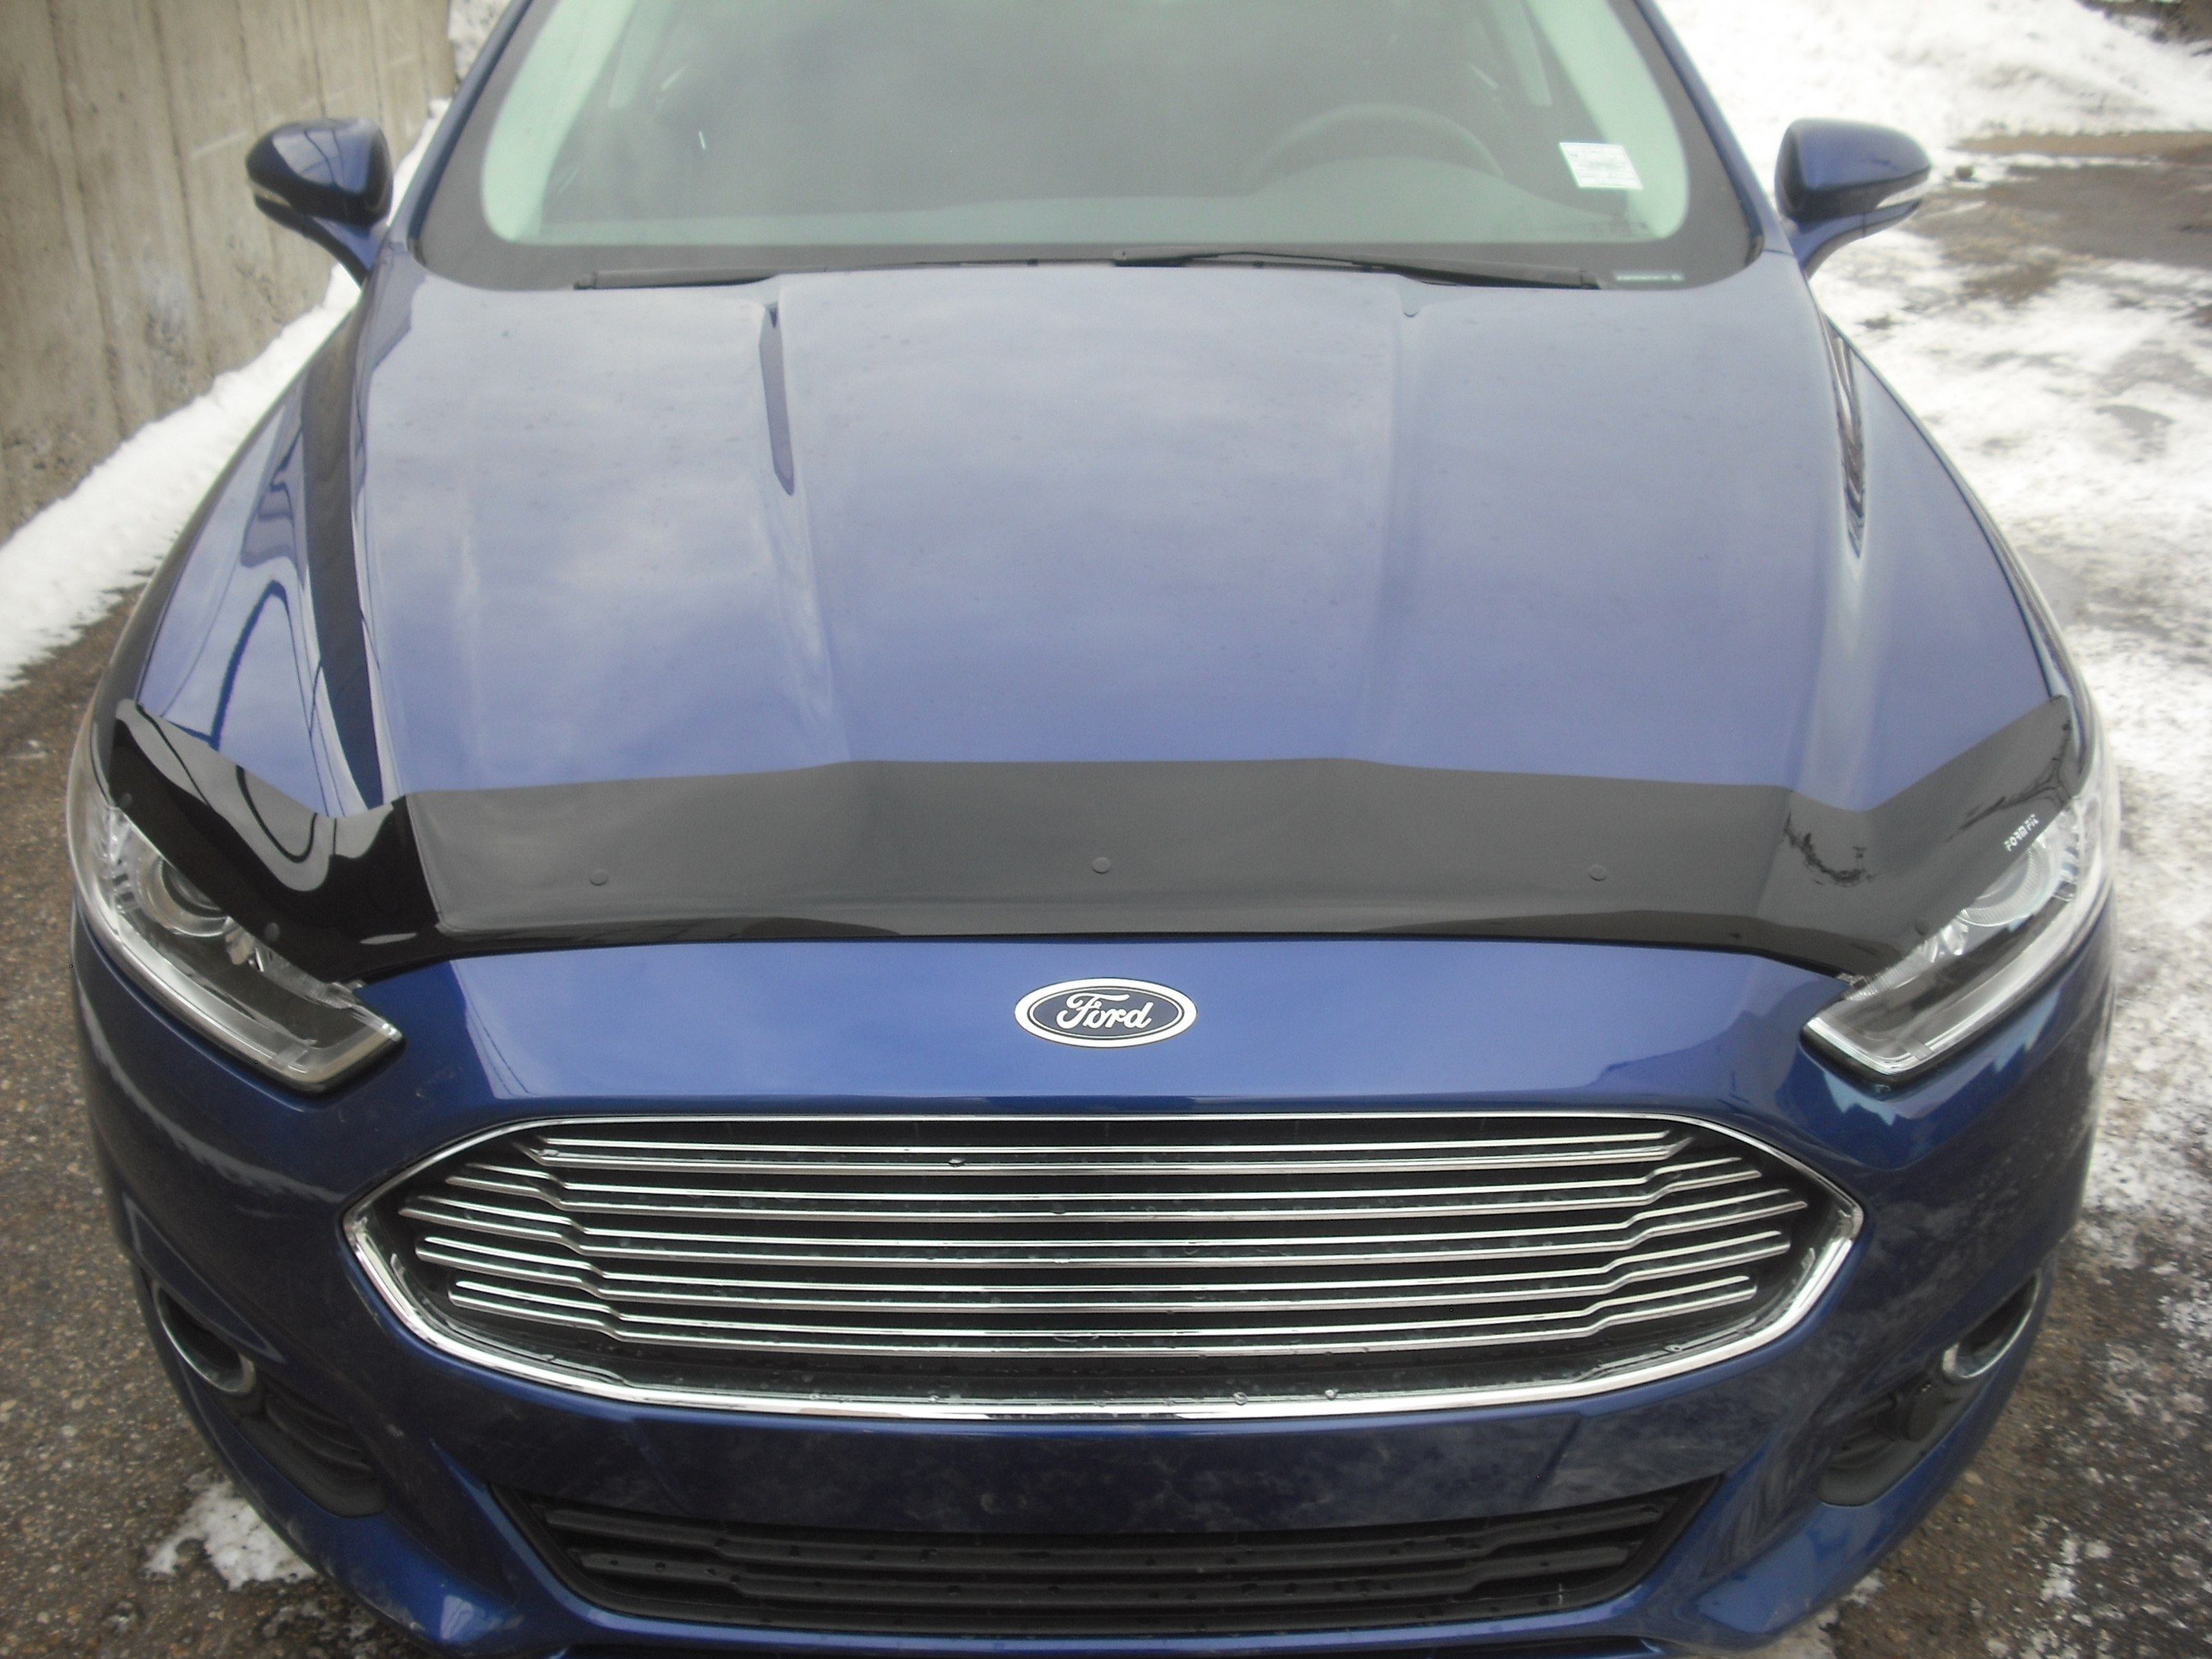 car fusion s reviews first hybrid and ford photo review original driver drive